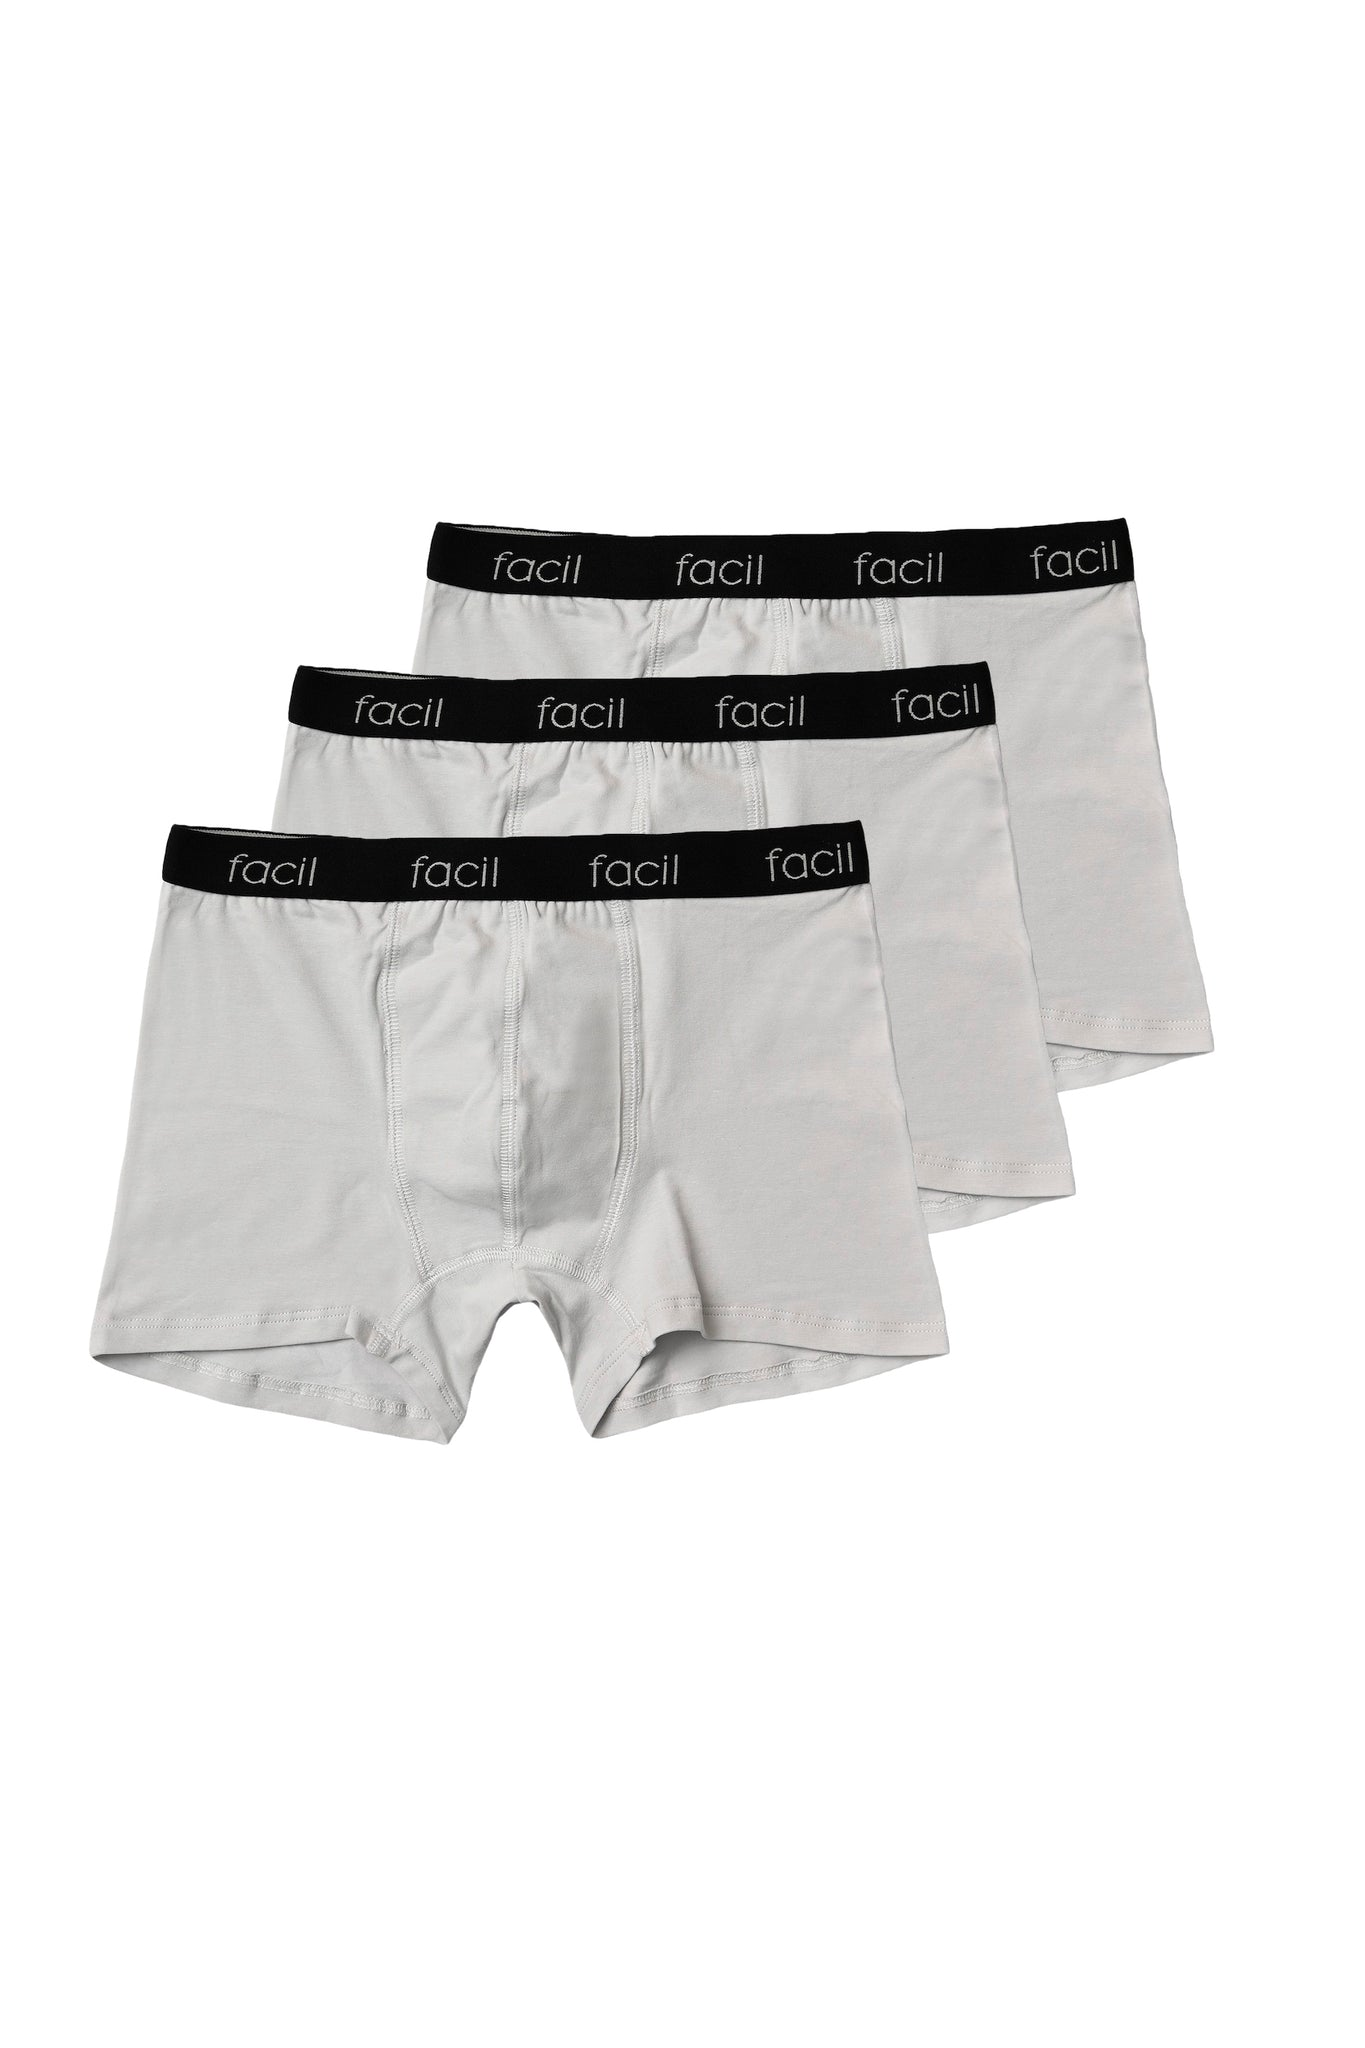 Boy's boxer shorts, 3-pack